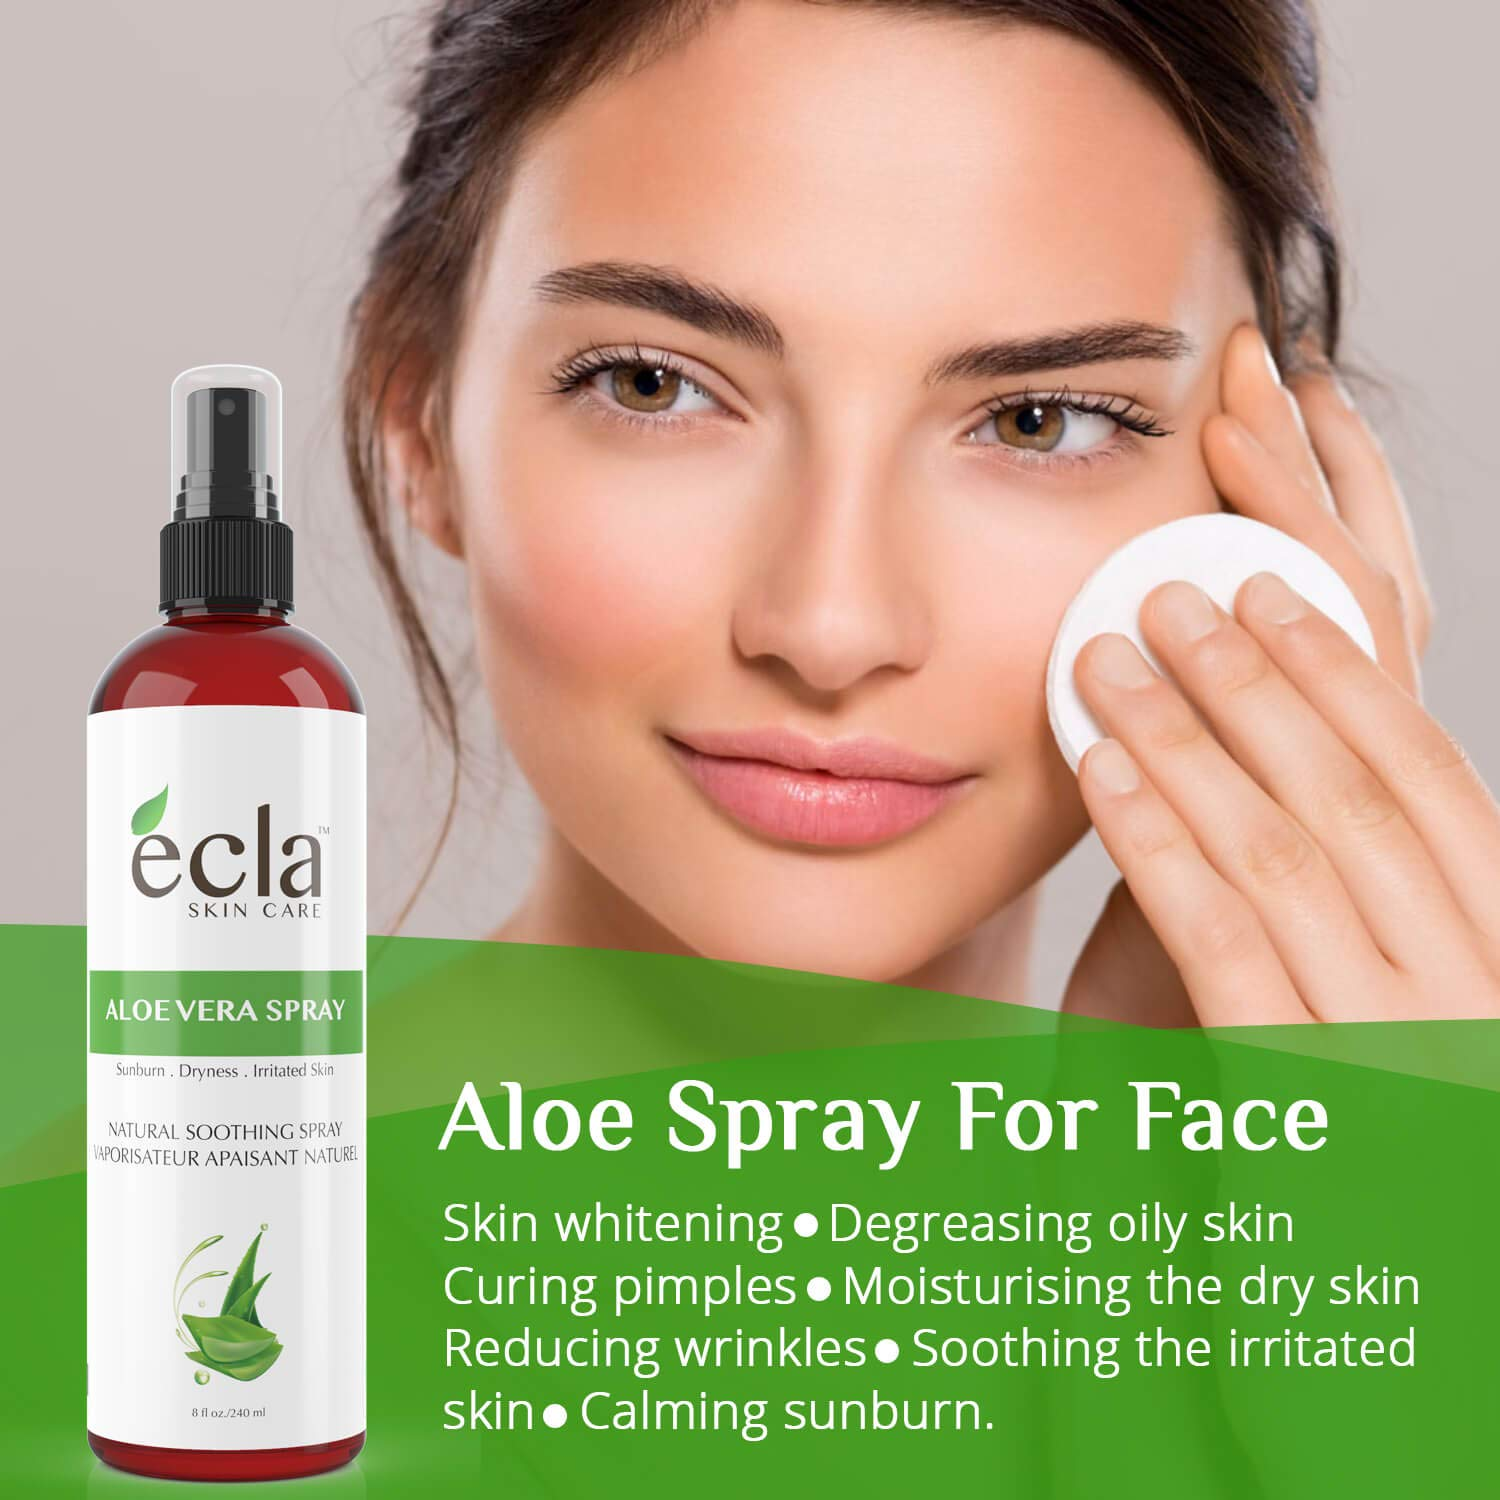 Aloe Vera Spray Mist for Face Body and Hair - Made in Canada with Organic Real Juice (Not Powder) and Seaweed 8 Oz - 240ml Natural Formula Toner to Moisturize and Rebalance Skin and Relieve Sunburns